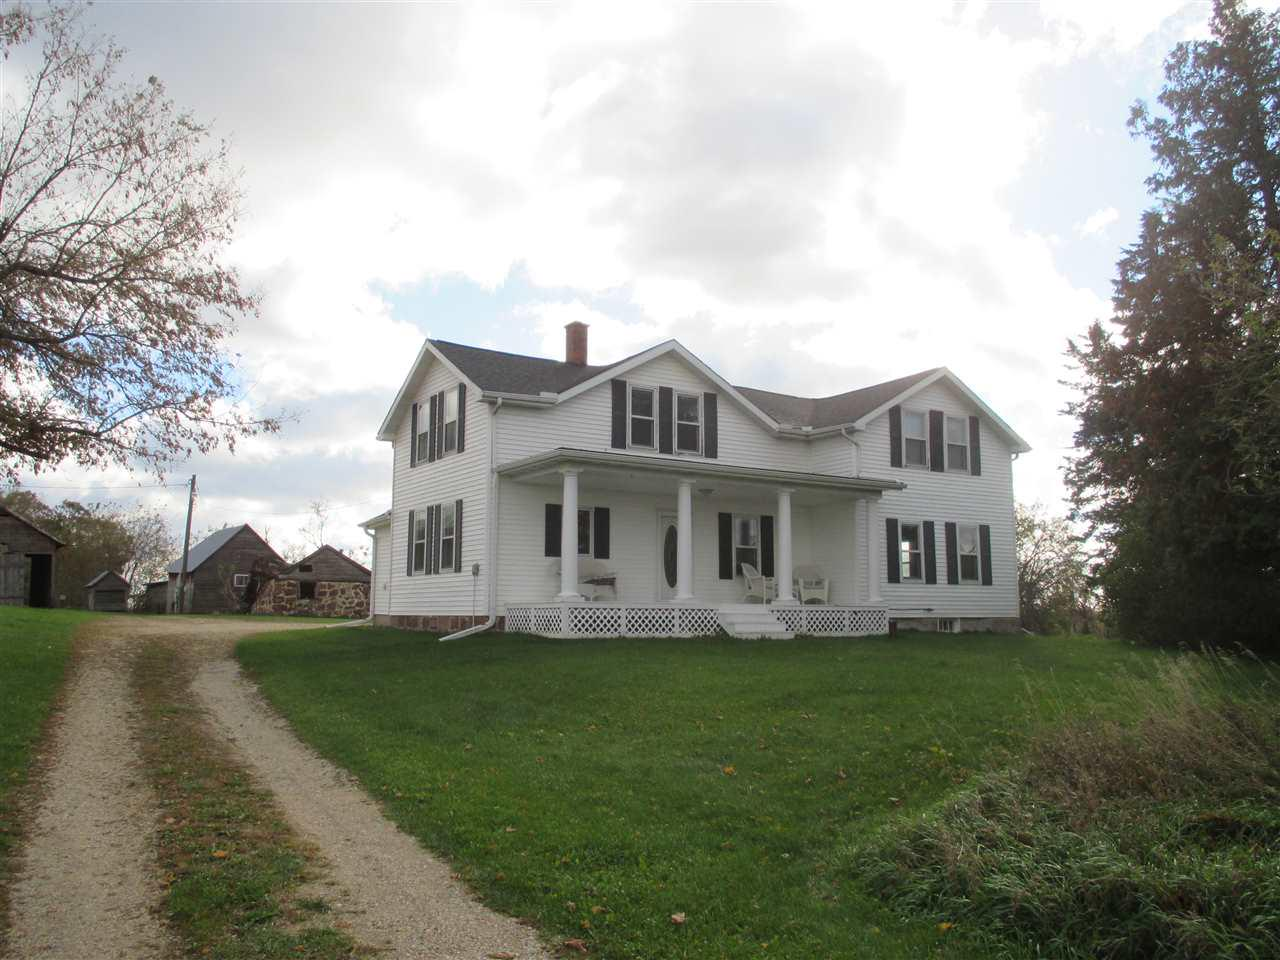 Country farmhouse on 76 acres of prime hunting land in the heart of Marquette County.  Main level offers updated kitchen, large dining room with maple wood flooring and a beautiful built in hutch, living room and main floor bedroom.  Upper level offers 3 nice size bedrooms.   Enjoy the peach, cherry, apple and pear trees.  Dual wood or forced air heat source to save on the utility costs. New roof on home in 2018!  Partial basement.  Some older farm buildings.  Very private location.